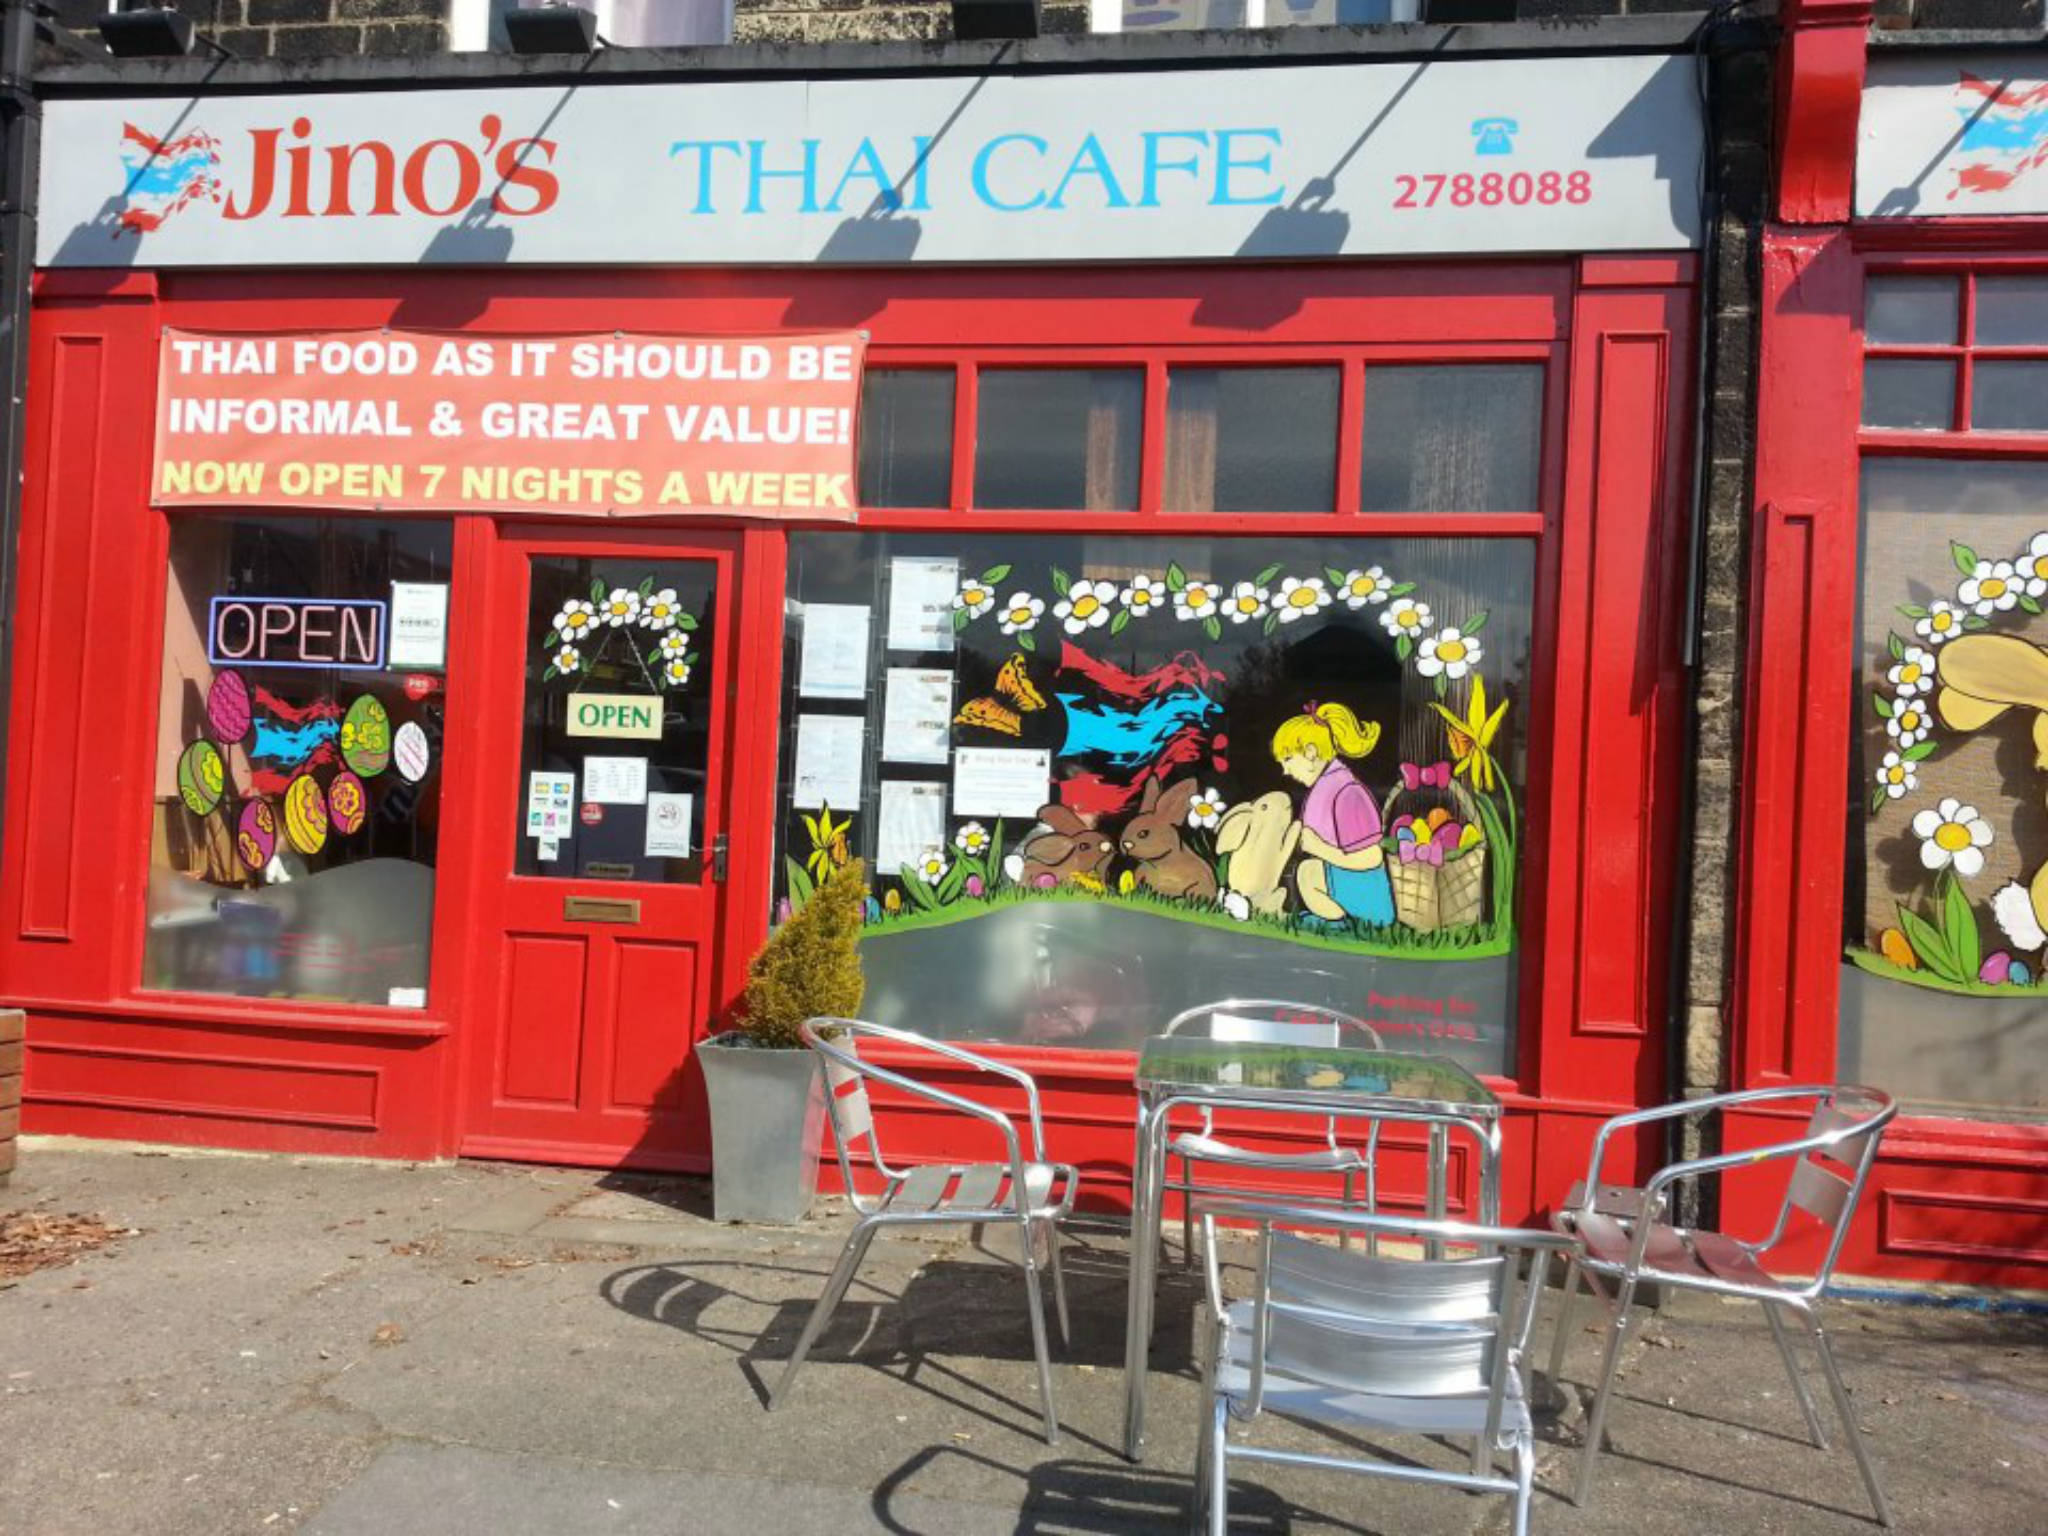 Jino's Thai Cafe